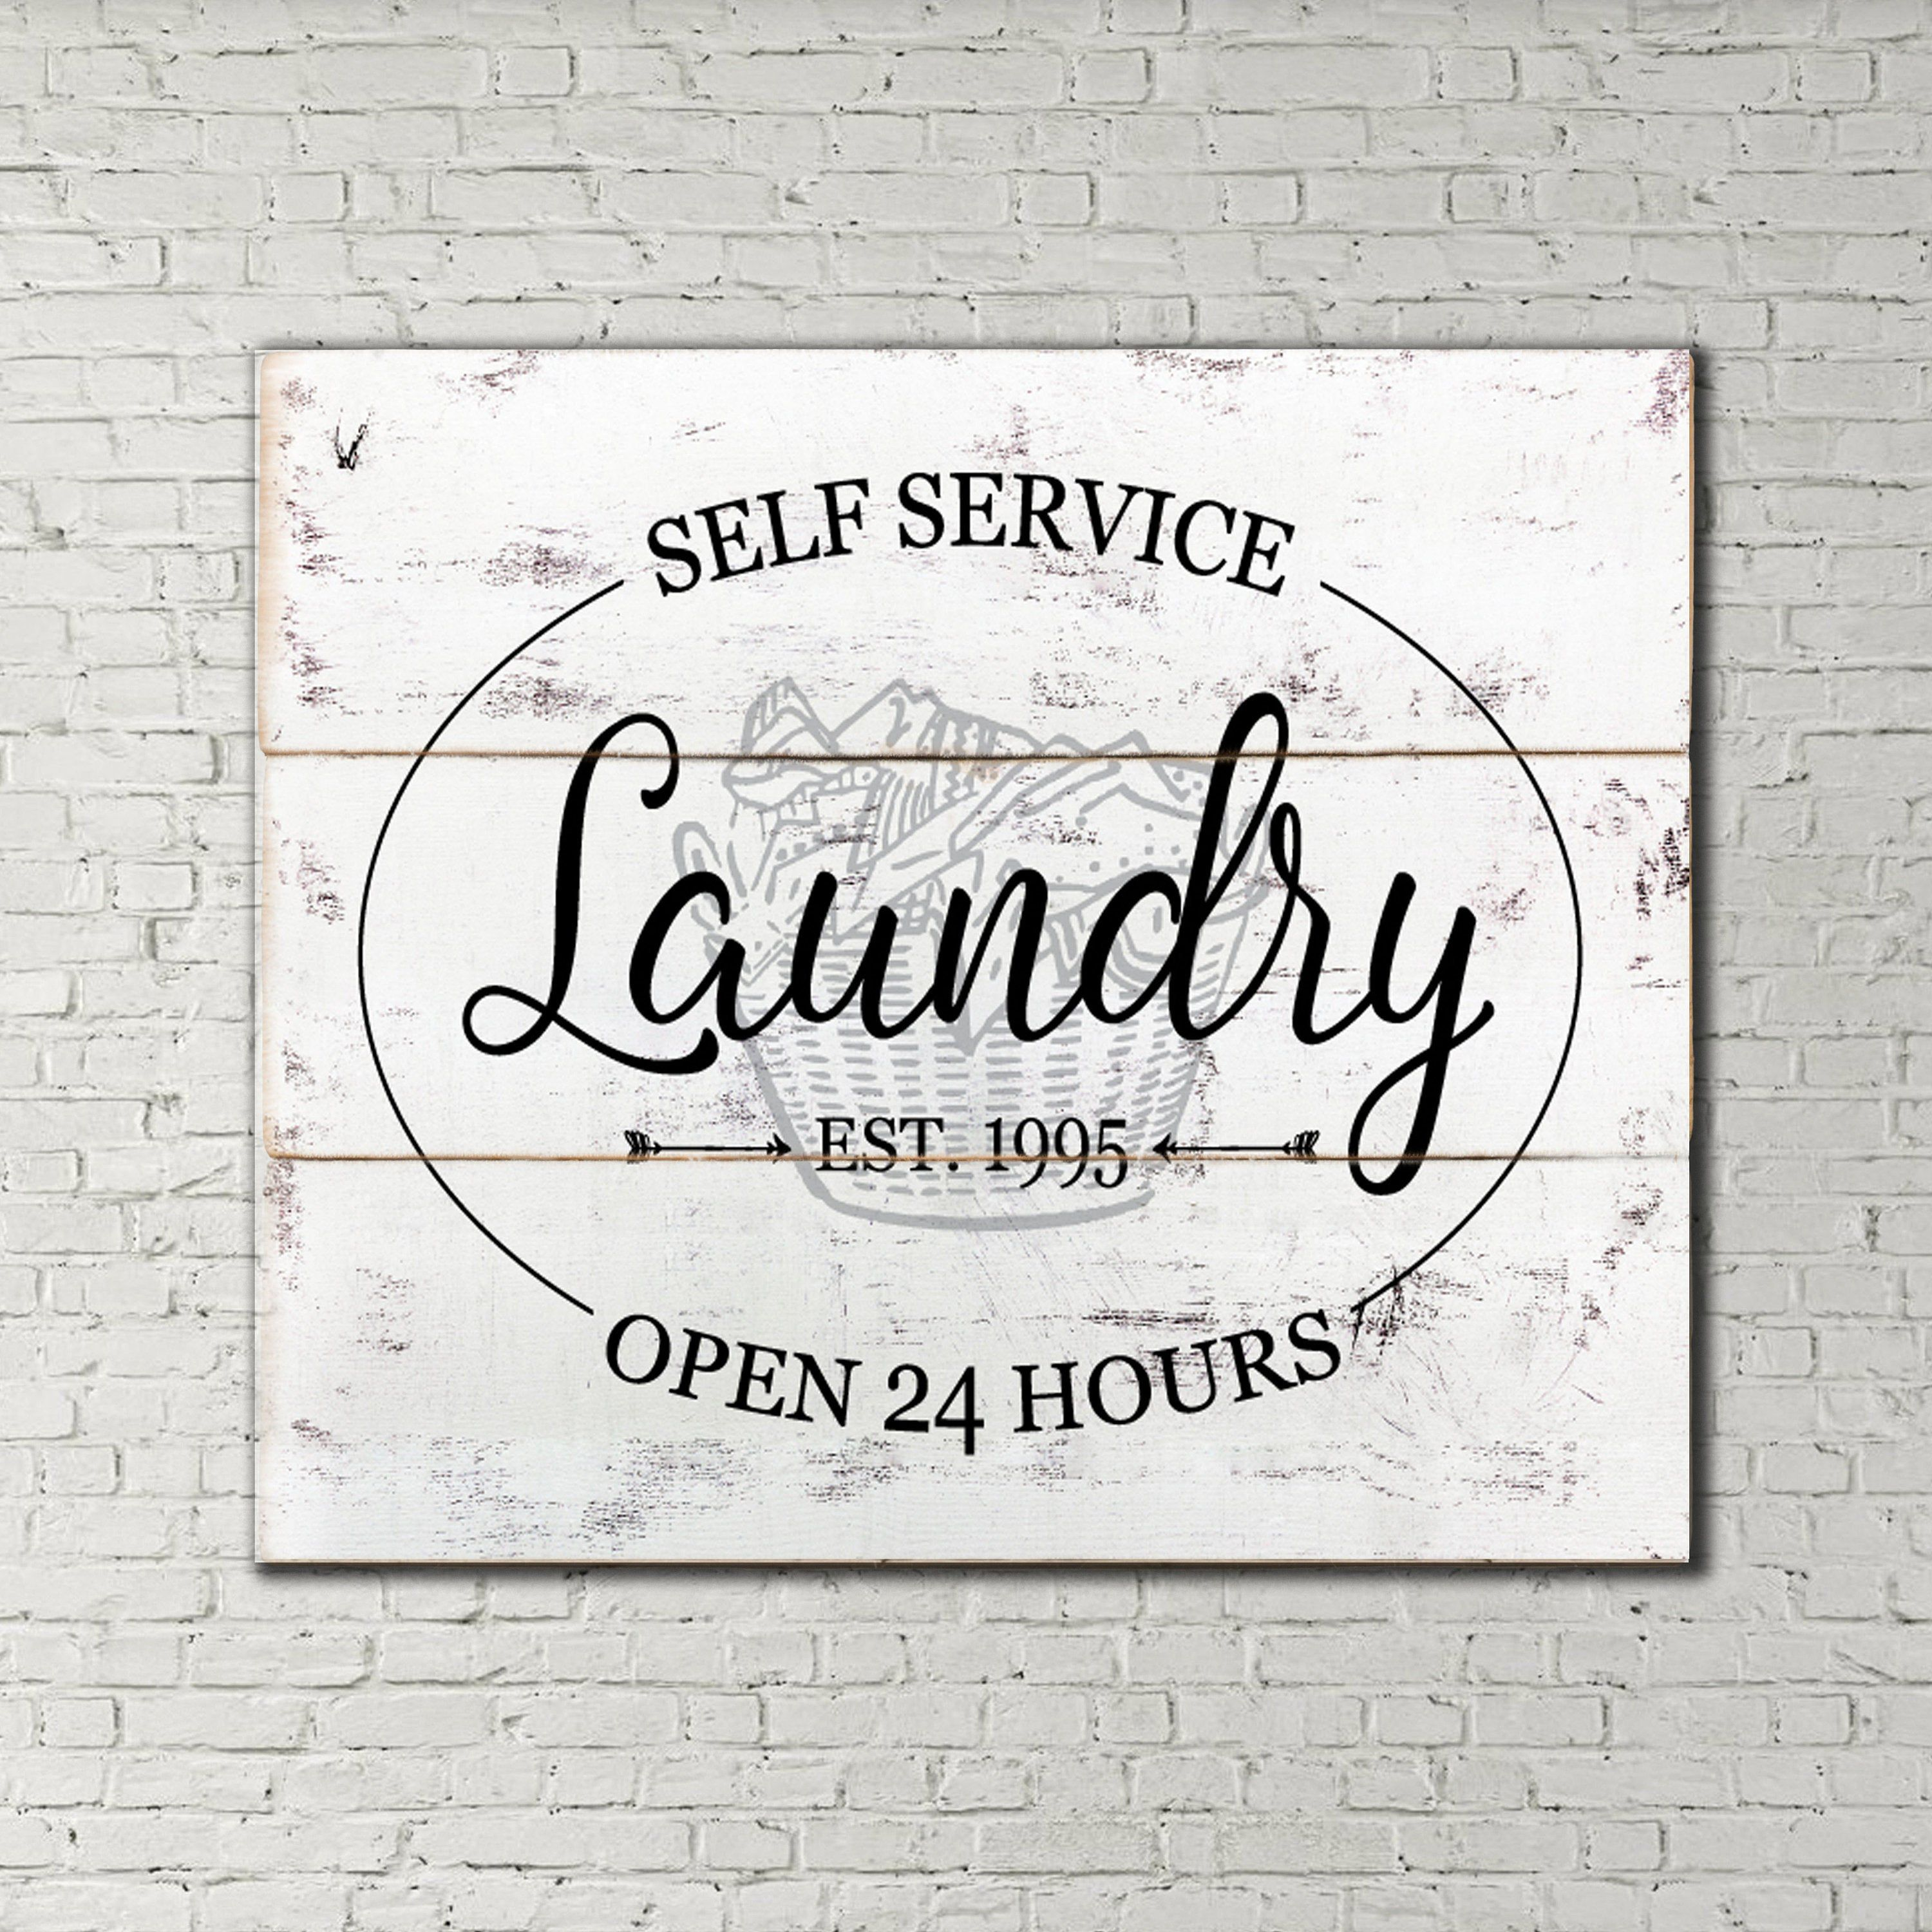 Laundry Self Service Open 24 hours Wood Sign Pallet Print